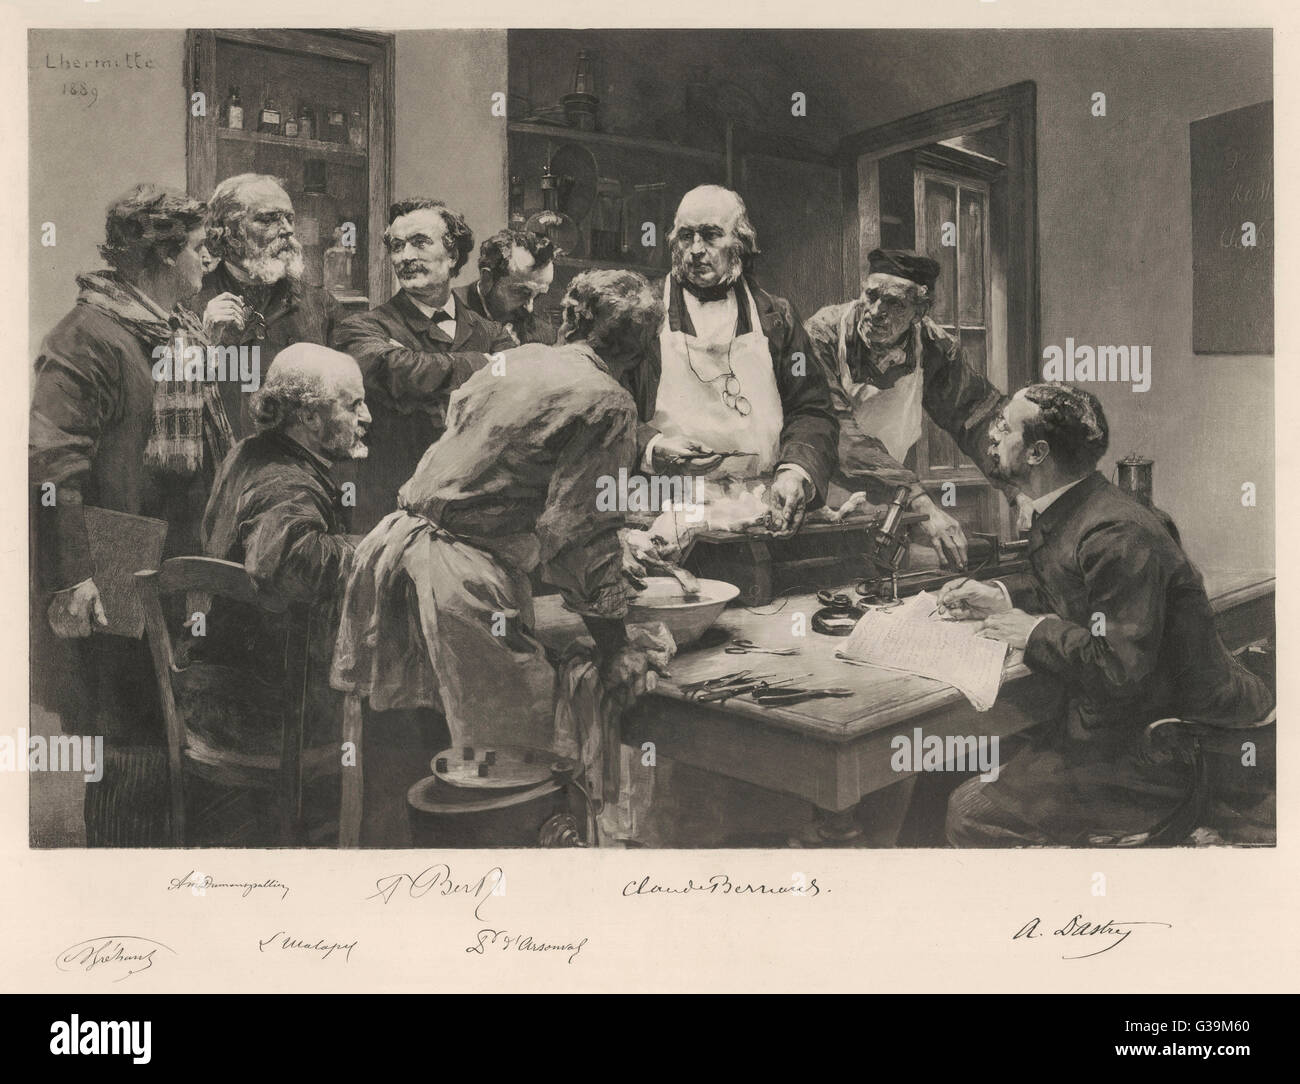 Claude Bernard, French  physiologist, with a group of  colleagues, discussing the  anatomy of a rabbit       Date: - Stock Image